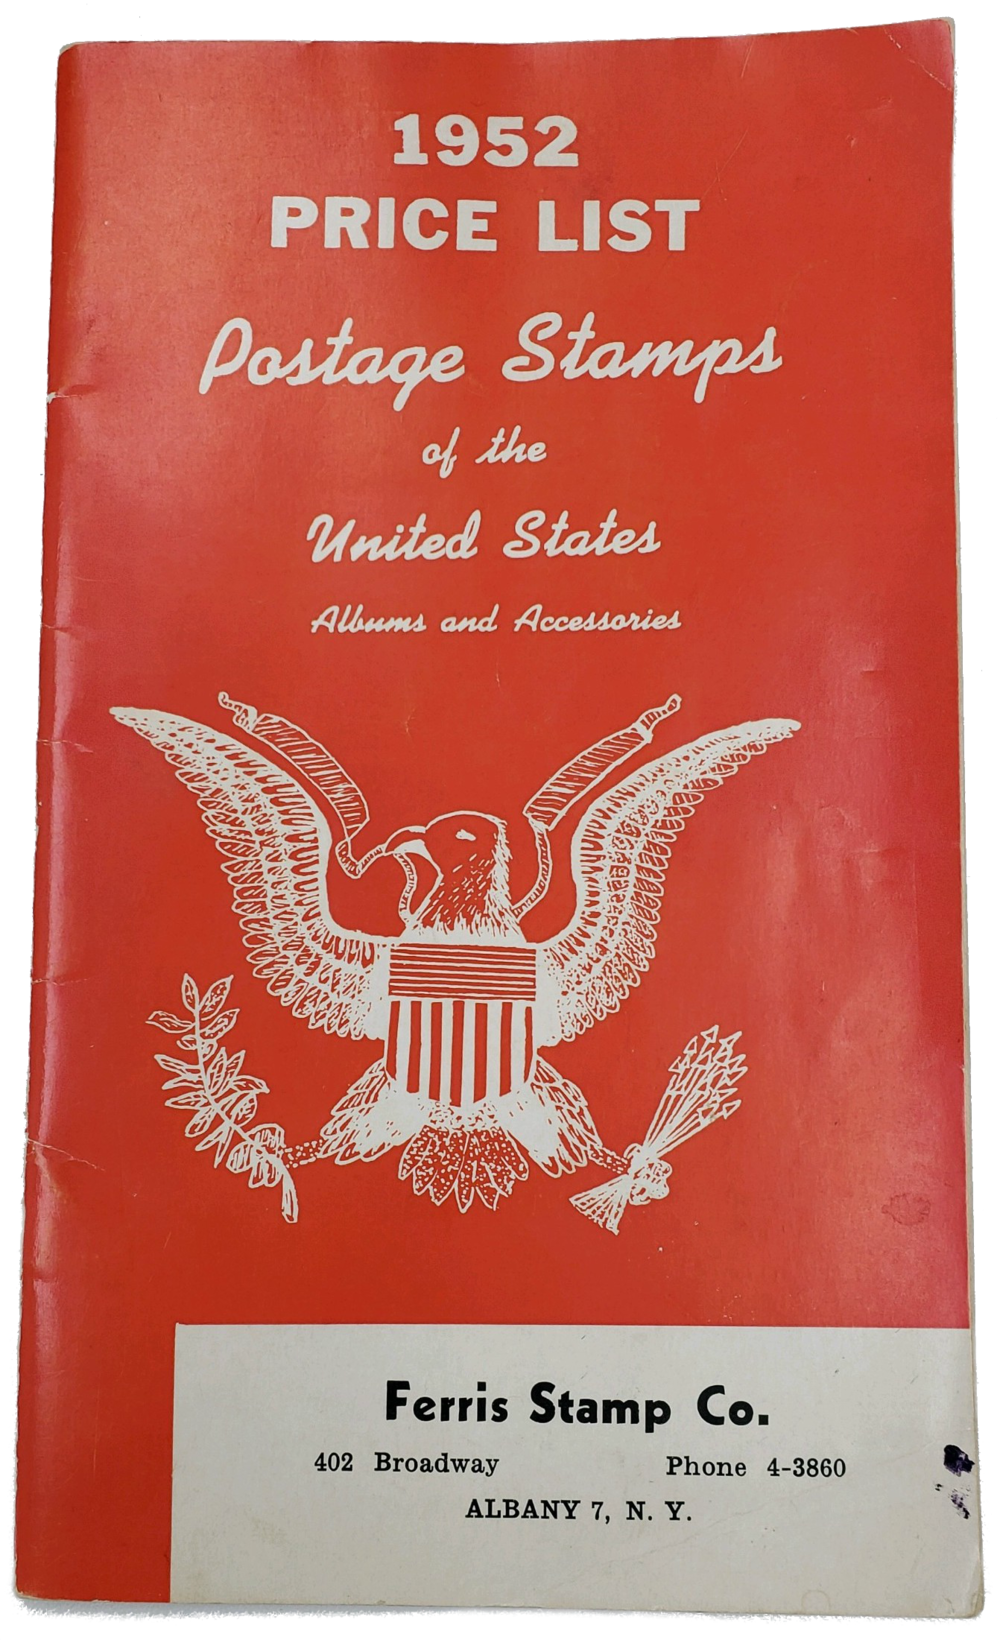 Pictured above is a 1952 price list for U.S postage stamps printed with the original Ferris Stamps business name and address. Though Ferris Coin & Jewelry no longer buys or sells stamps, we are proud of company history and roots.  A customer brought this book to our store in the summer of 2018!